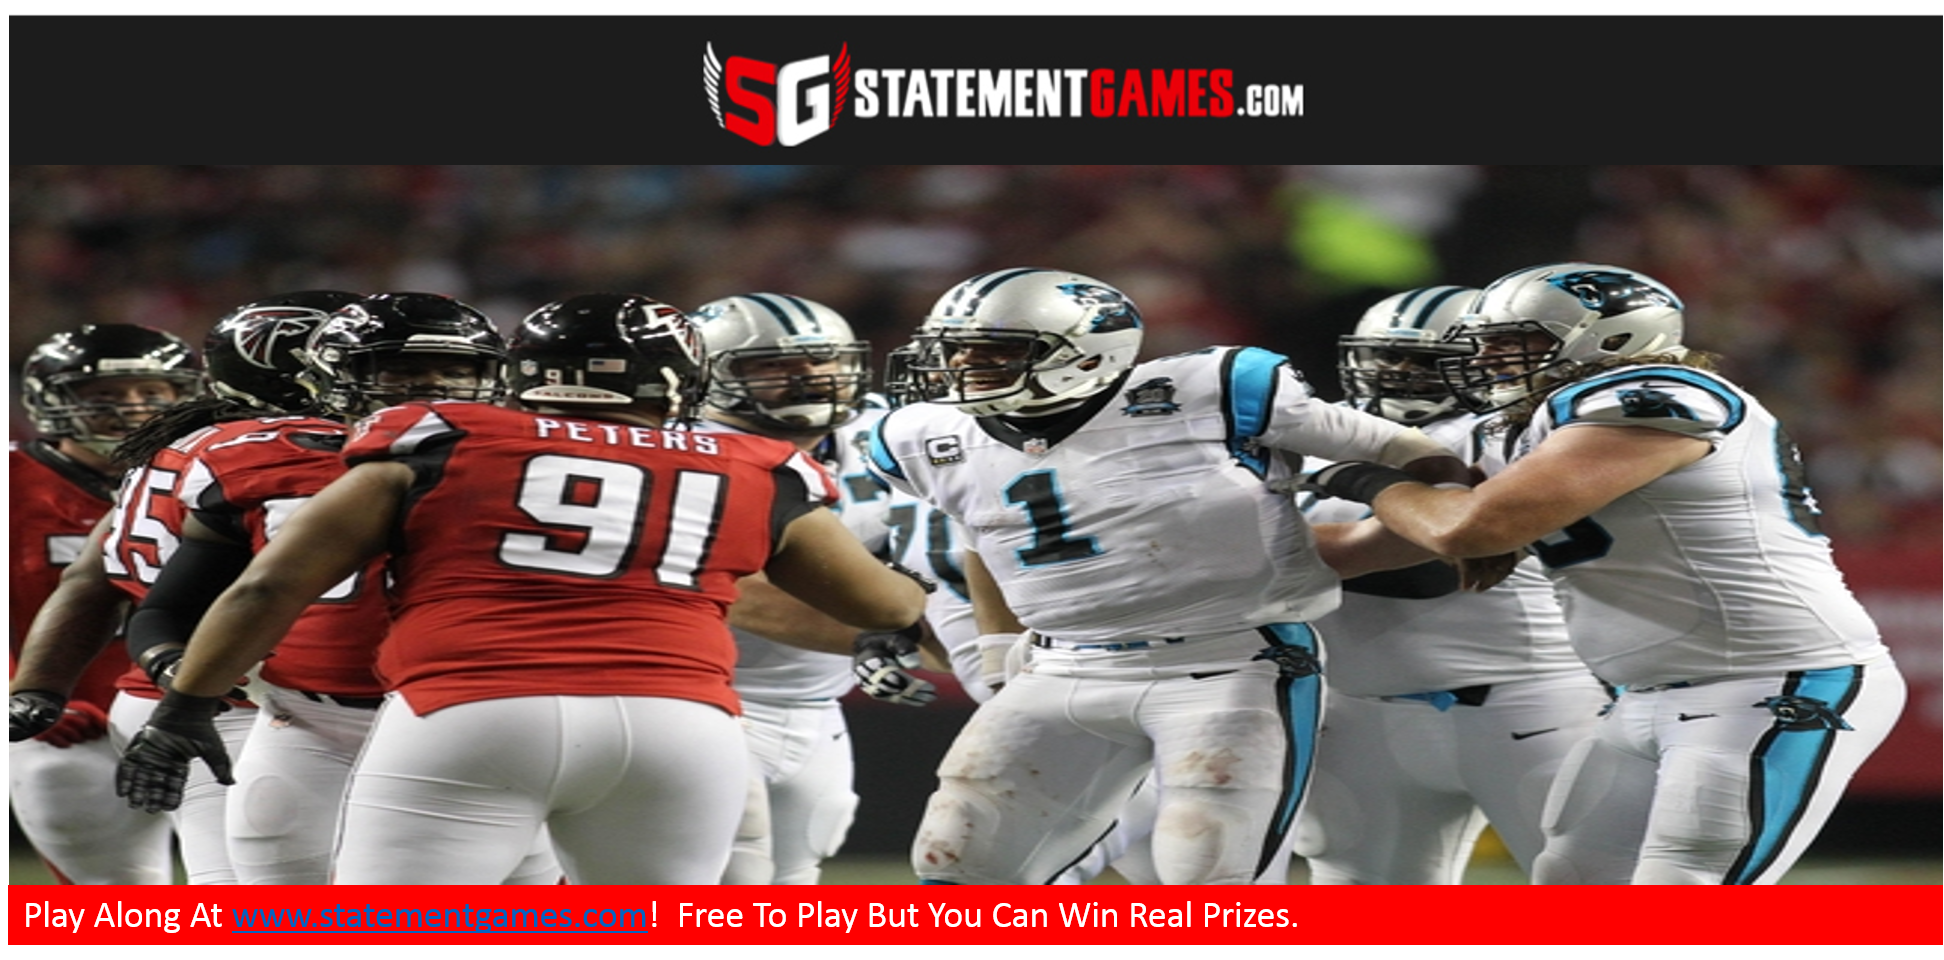 Get Some Practice In Play Carvsatl Tournament At Www Statementgames Com Starting Wildcardweekend Fantasy Football Devonta Freeman Fantasy Football Gifts